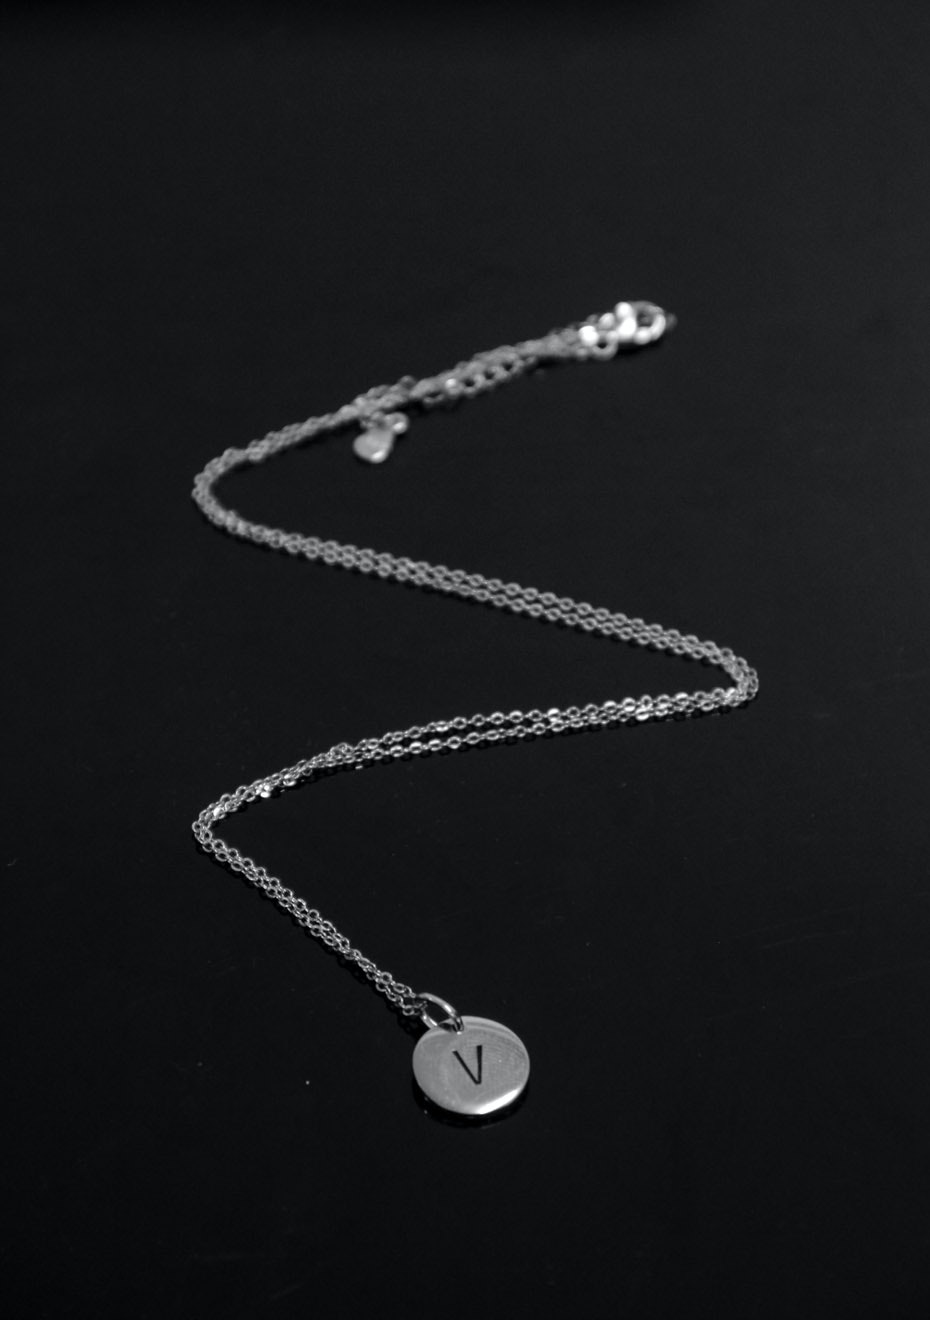 Stampled initial necklace - V